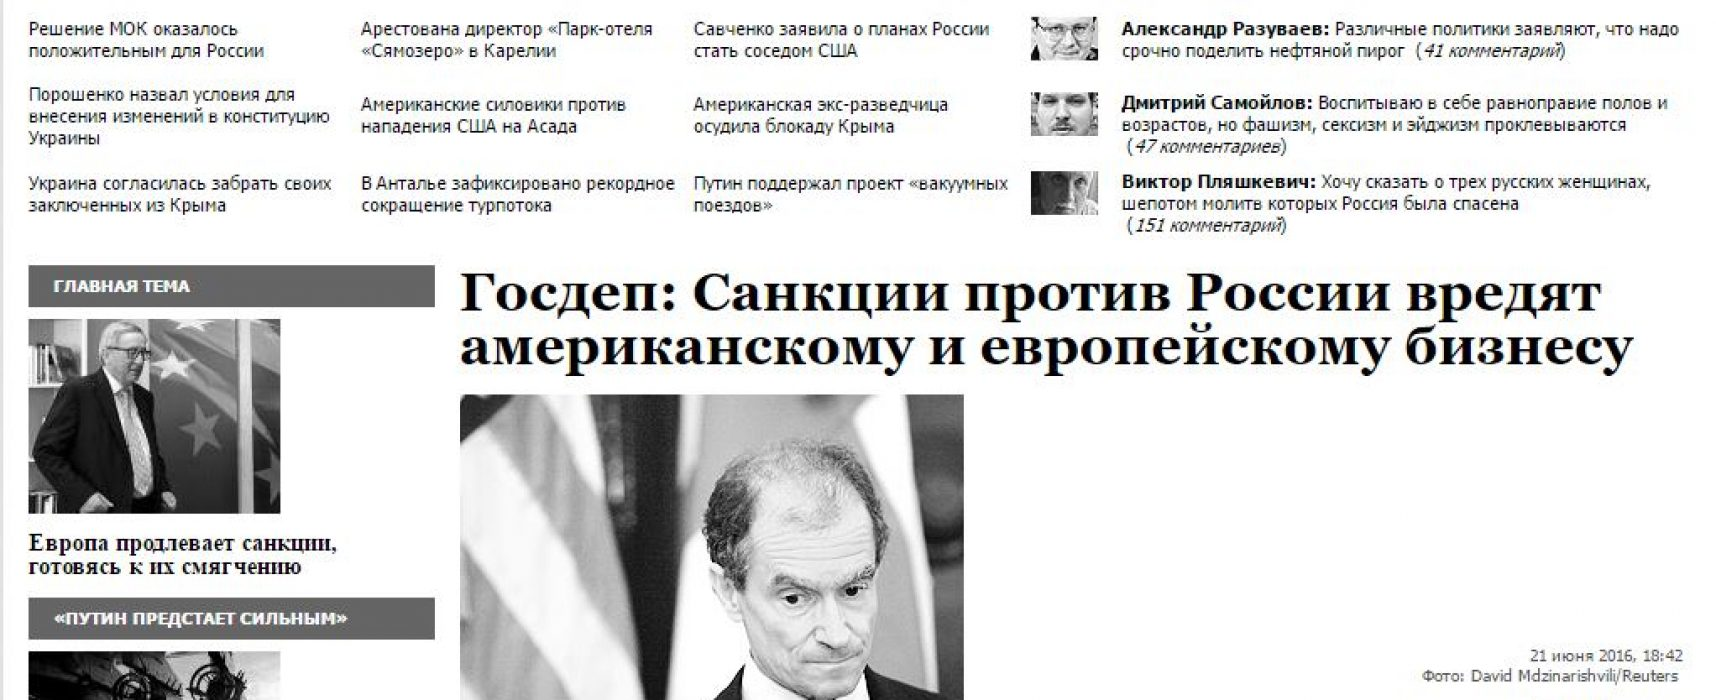 Russian media distort sanctions danger for US businesses